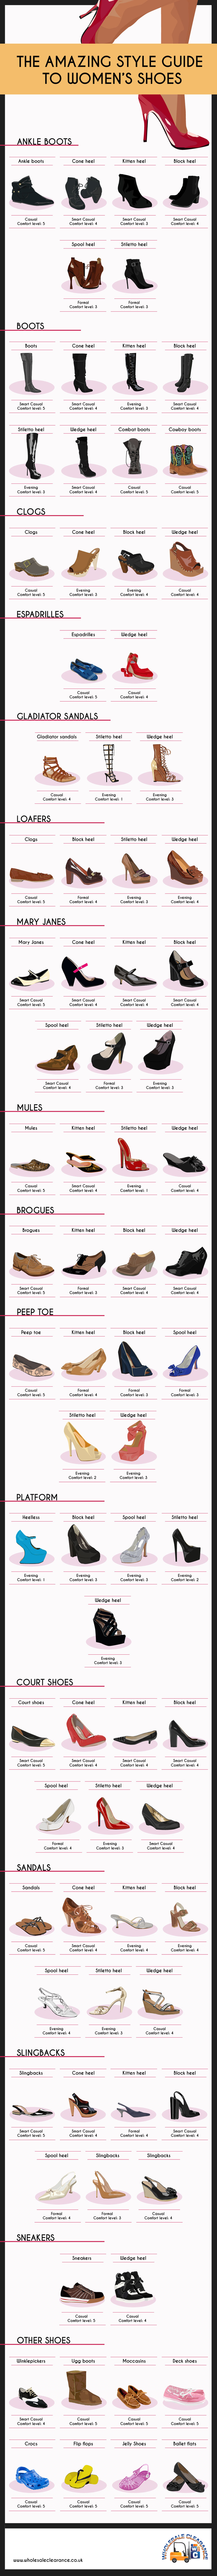 The Amazing Style Guide to Women's Shoes